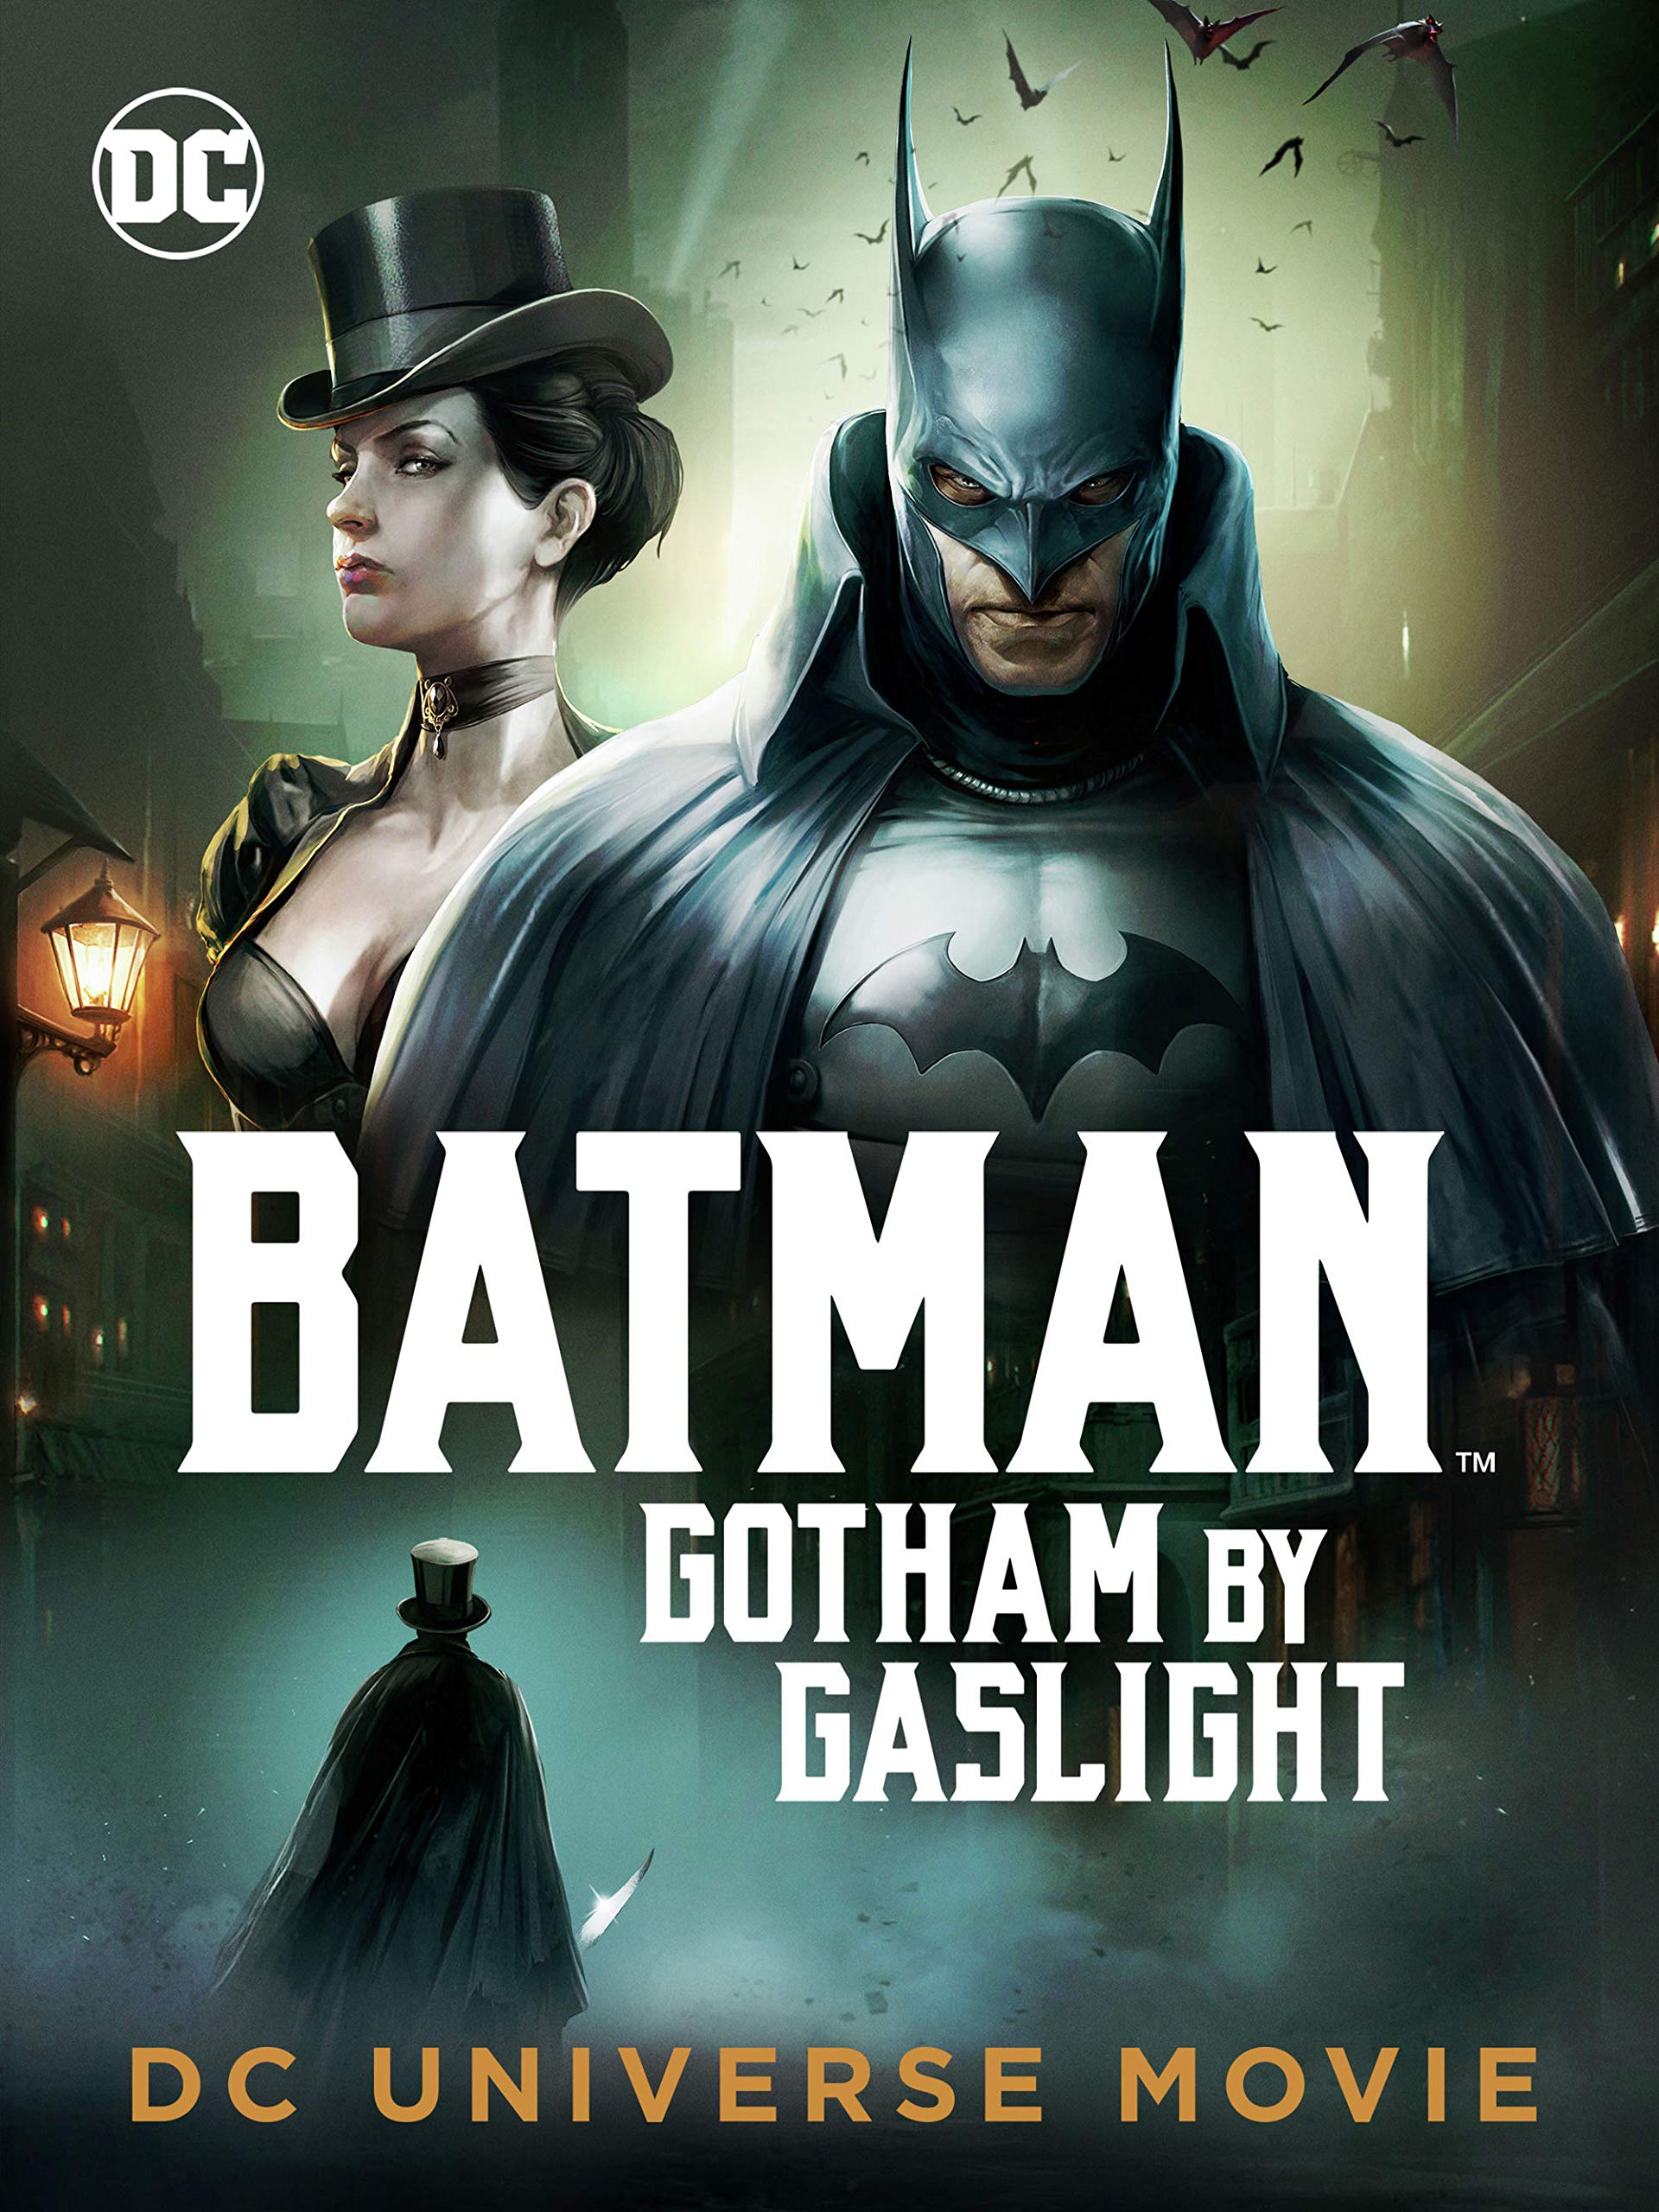 Watch Batman Gotham By Gaslight Prime Video